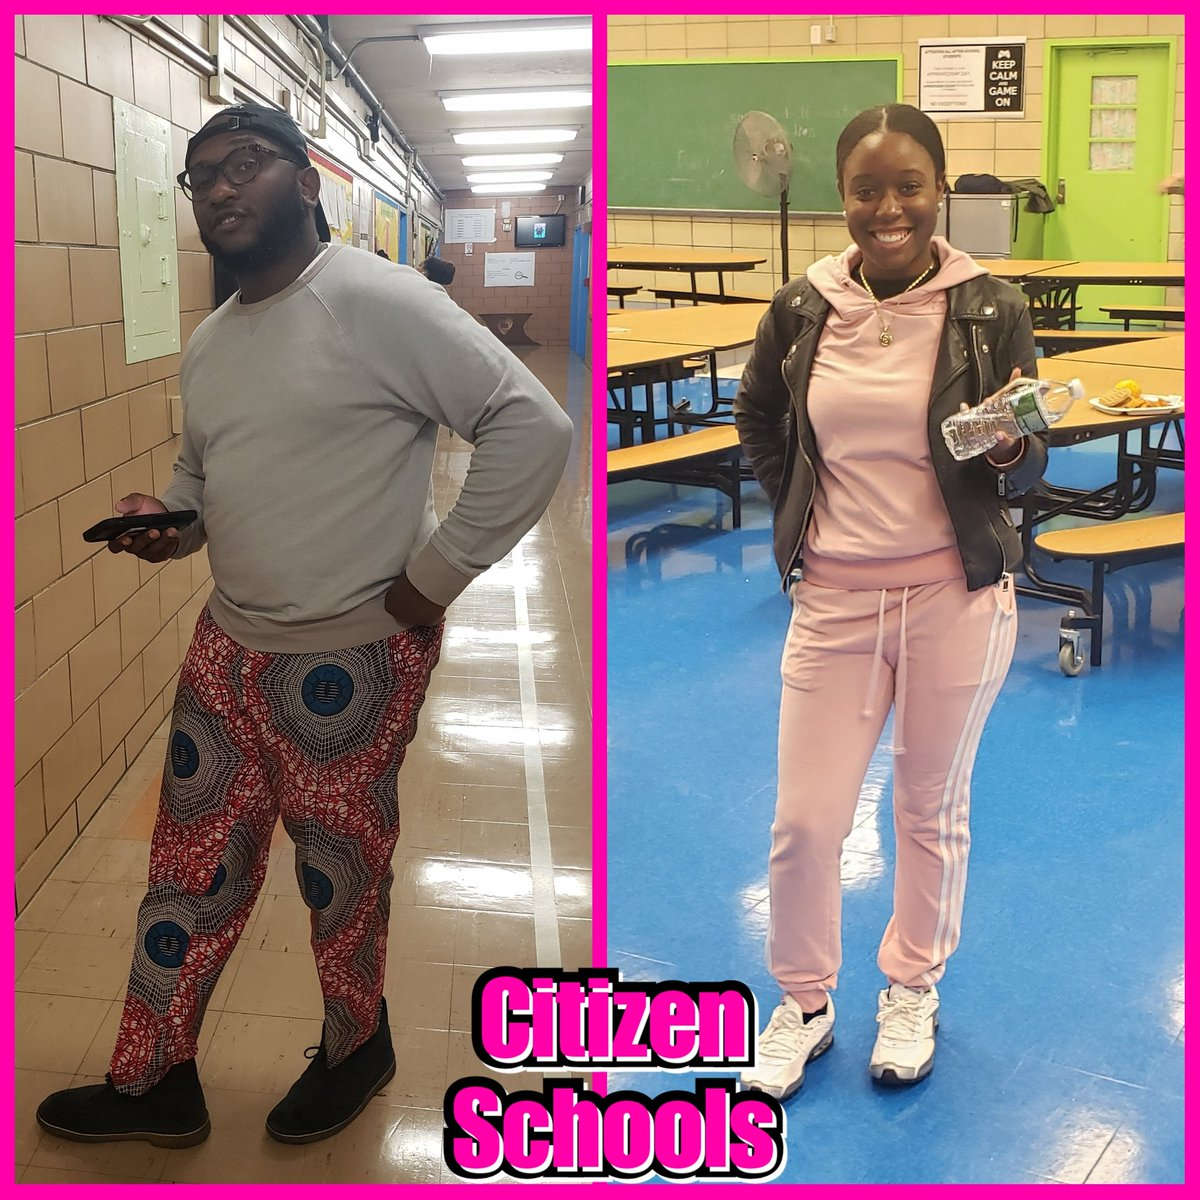 #TheRSAFamily #TheBESTPerformingArtsSchoolinD4   Shout out to our village... #principal , #teachers #officestaff , @PWCNYC , @cschools , @ps155D4 and #custodians & #janitors 🥰🥰🥰🥰 #UnityintheCommunity #UFTGOPINK #UnionStrong #UFT #breastcancerawareness https://t.co/8z03O7WpeA